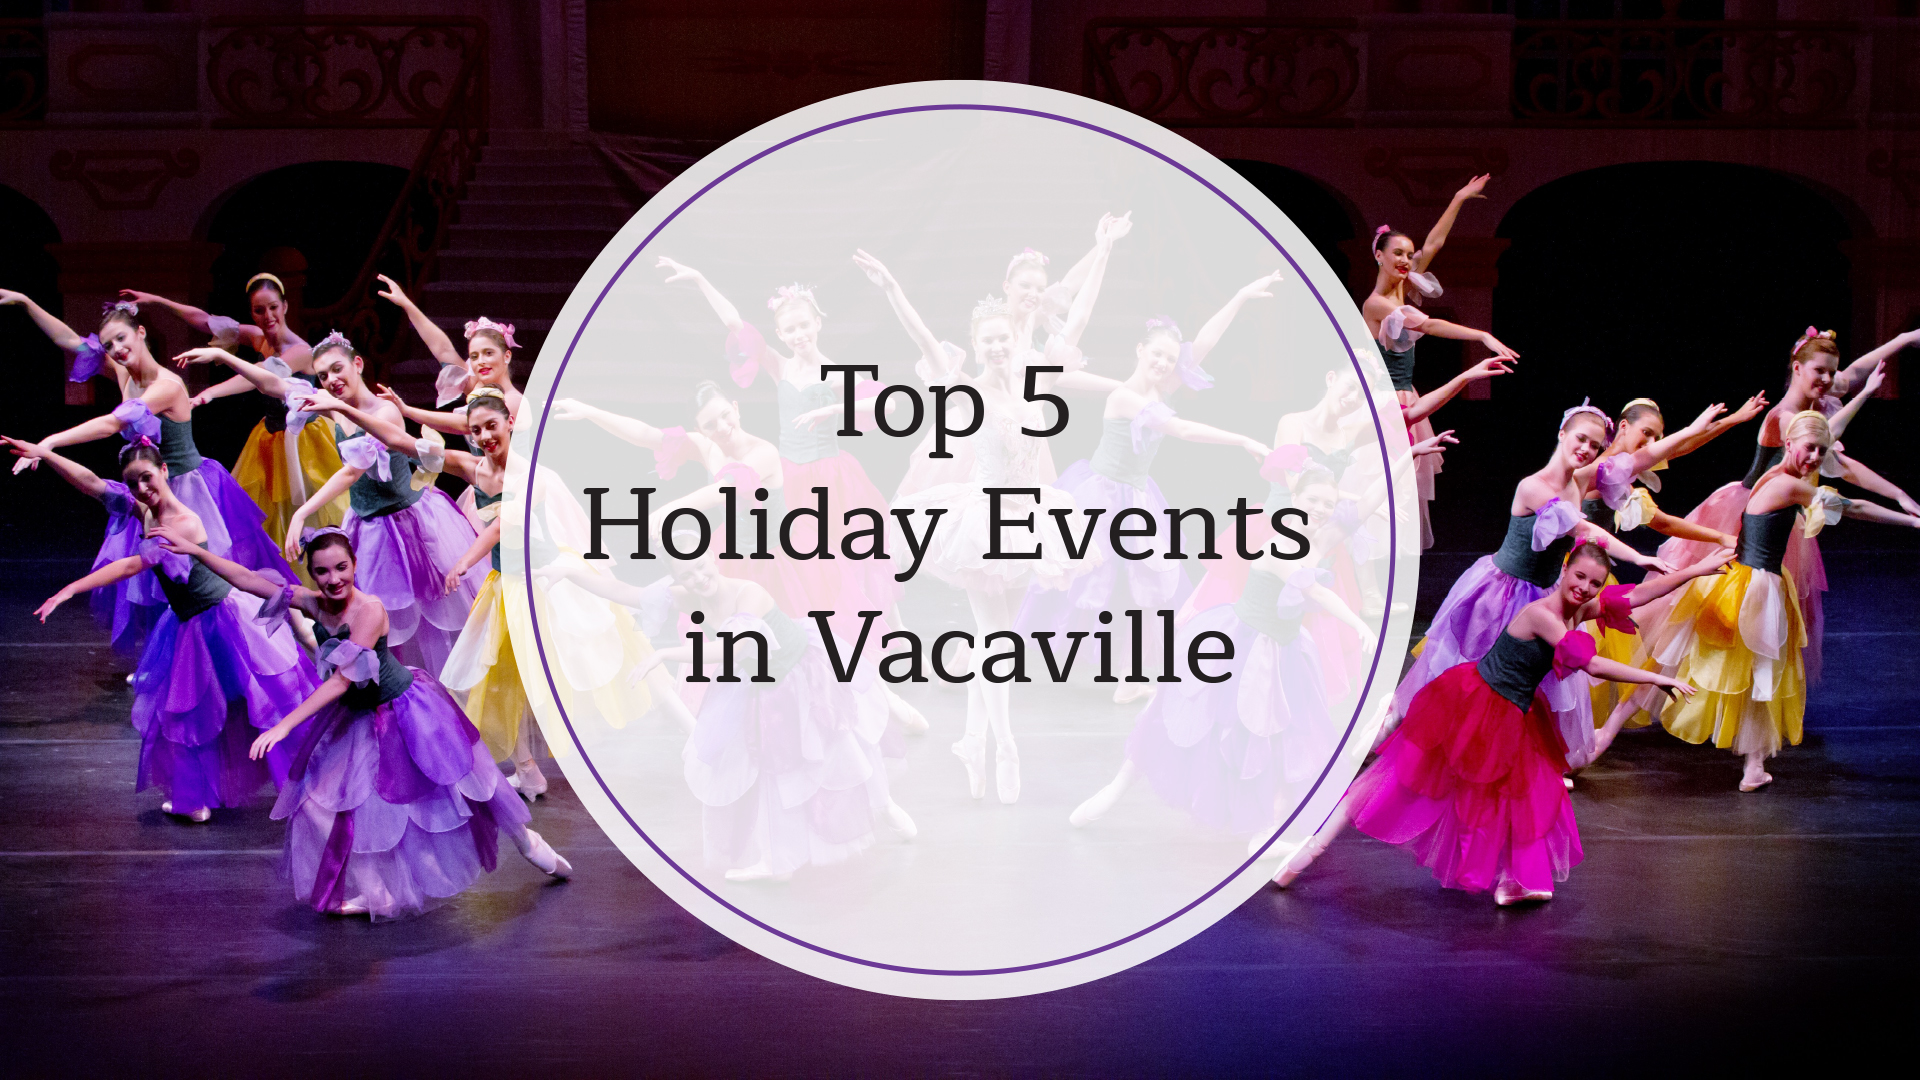 Top 5 Holiday Events in Vacaville